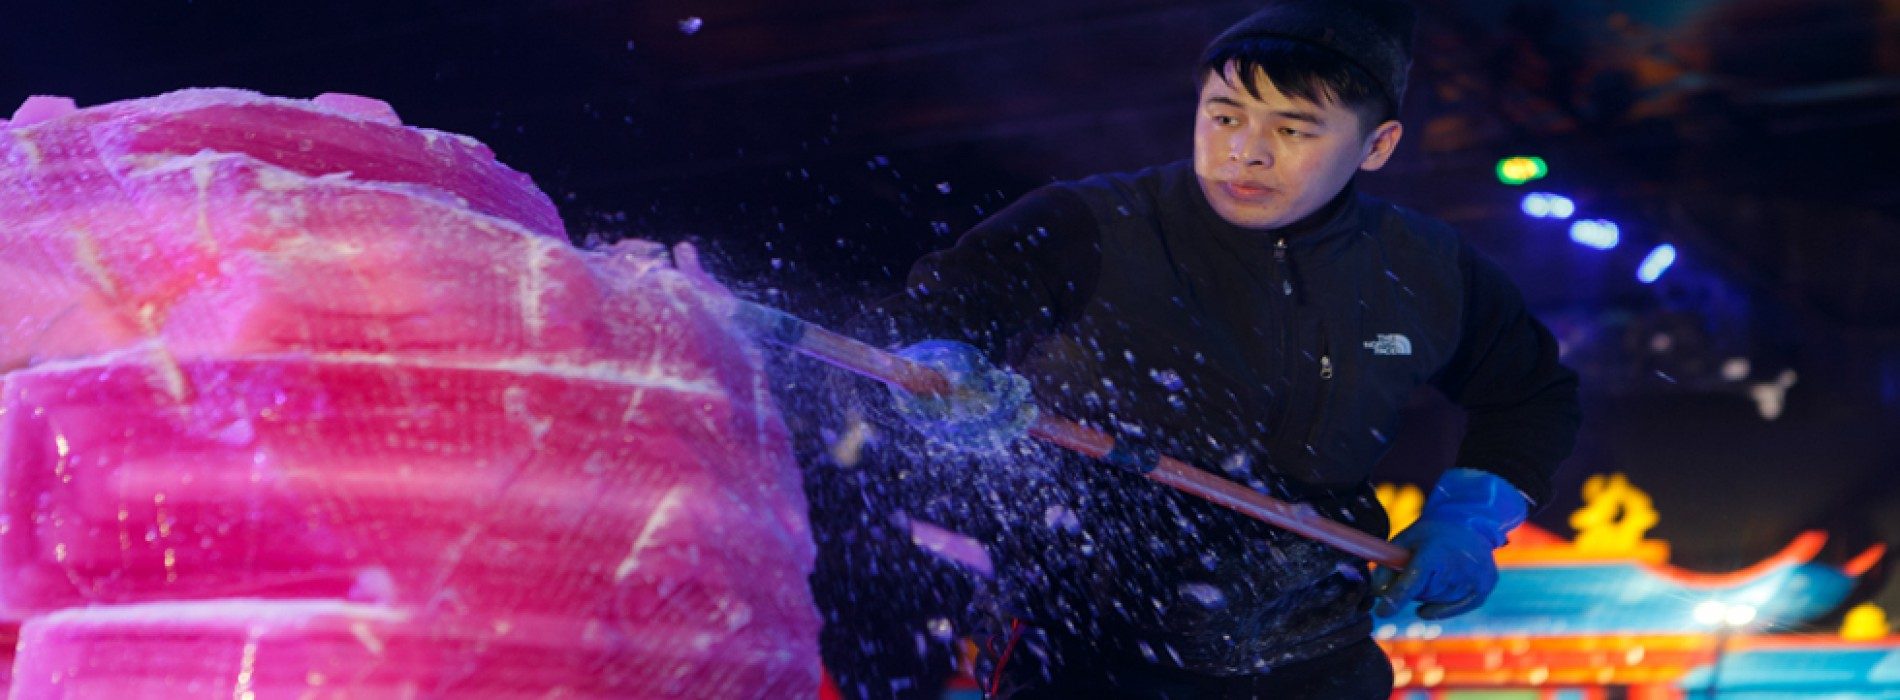 Kung Fu Panda Adventure Ice World with the DreamWorks All-Stars returns to The Venetian Macao